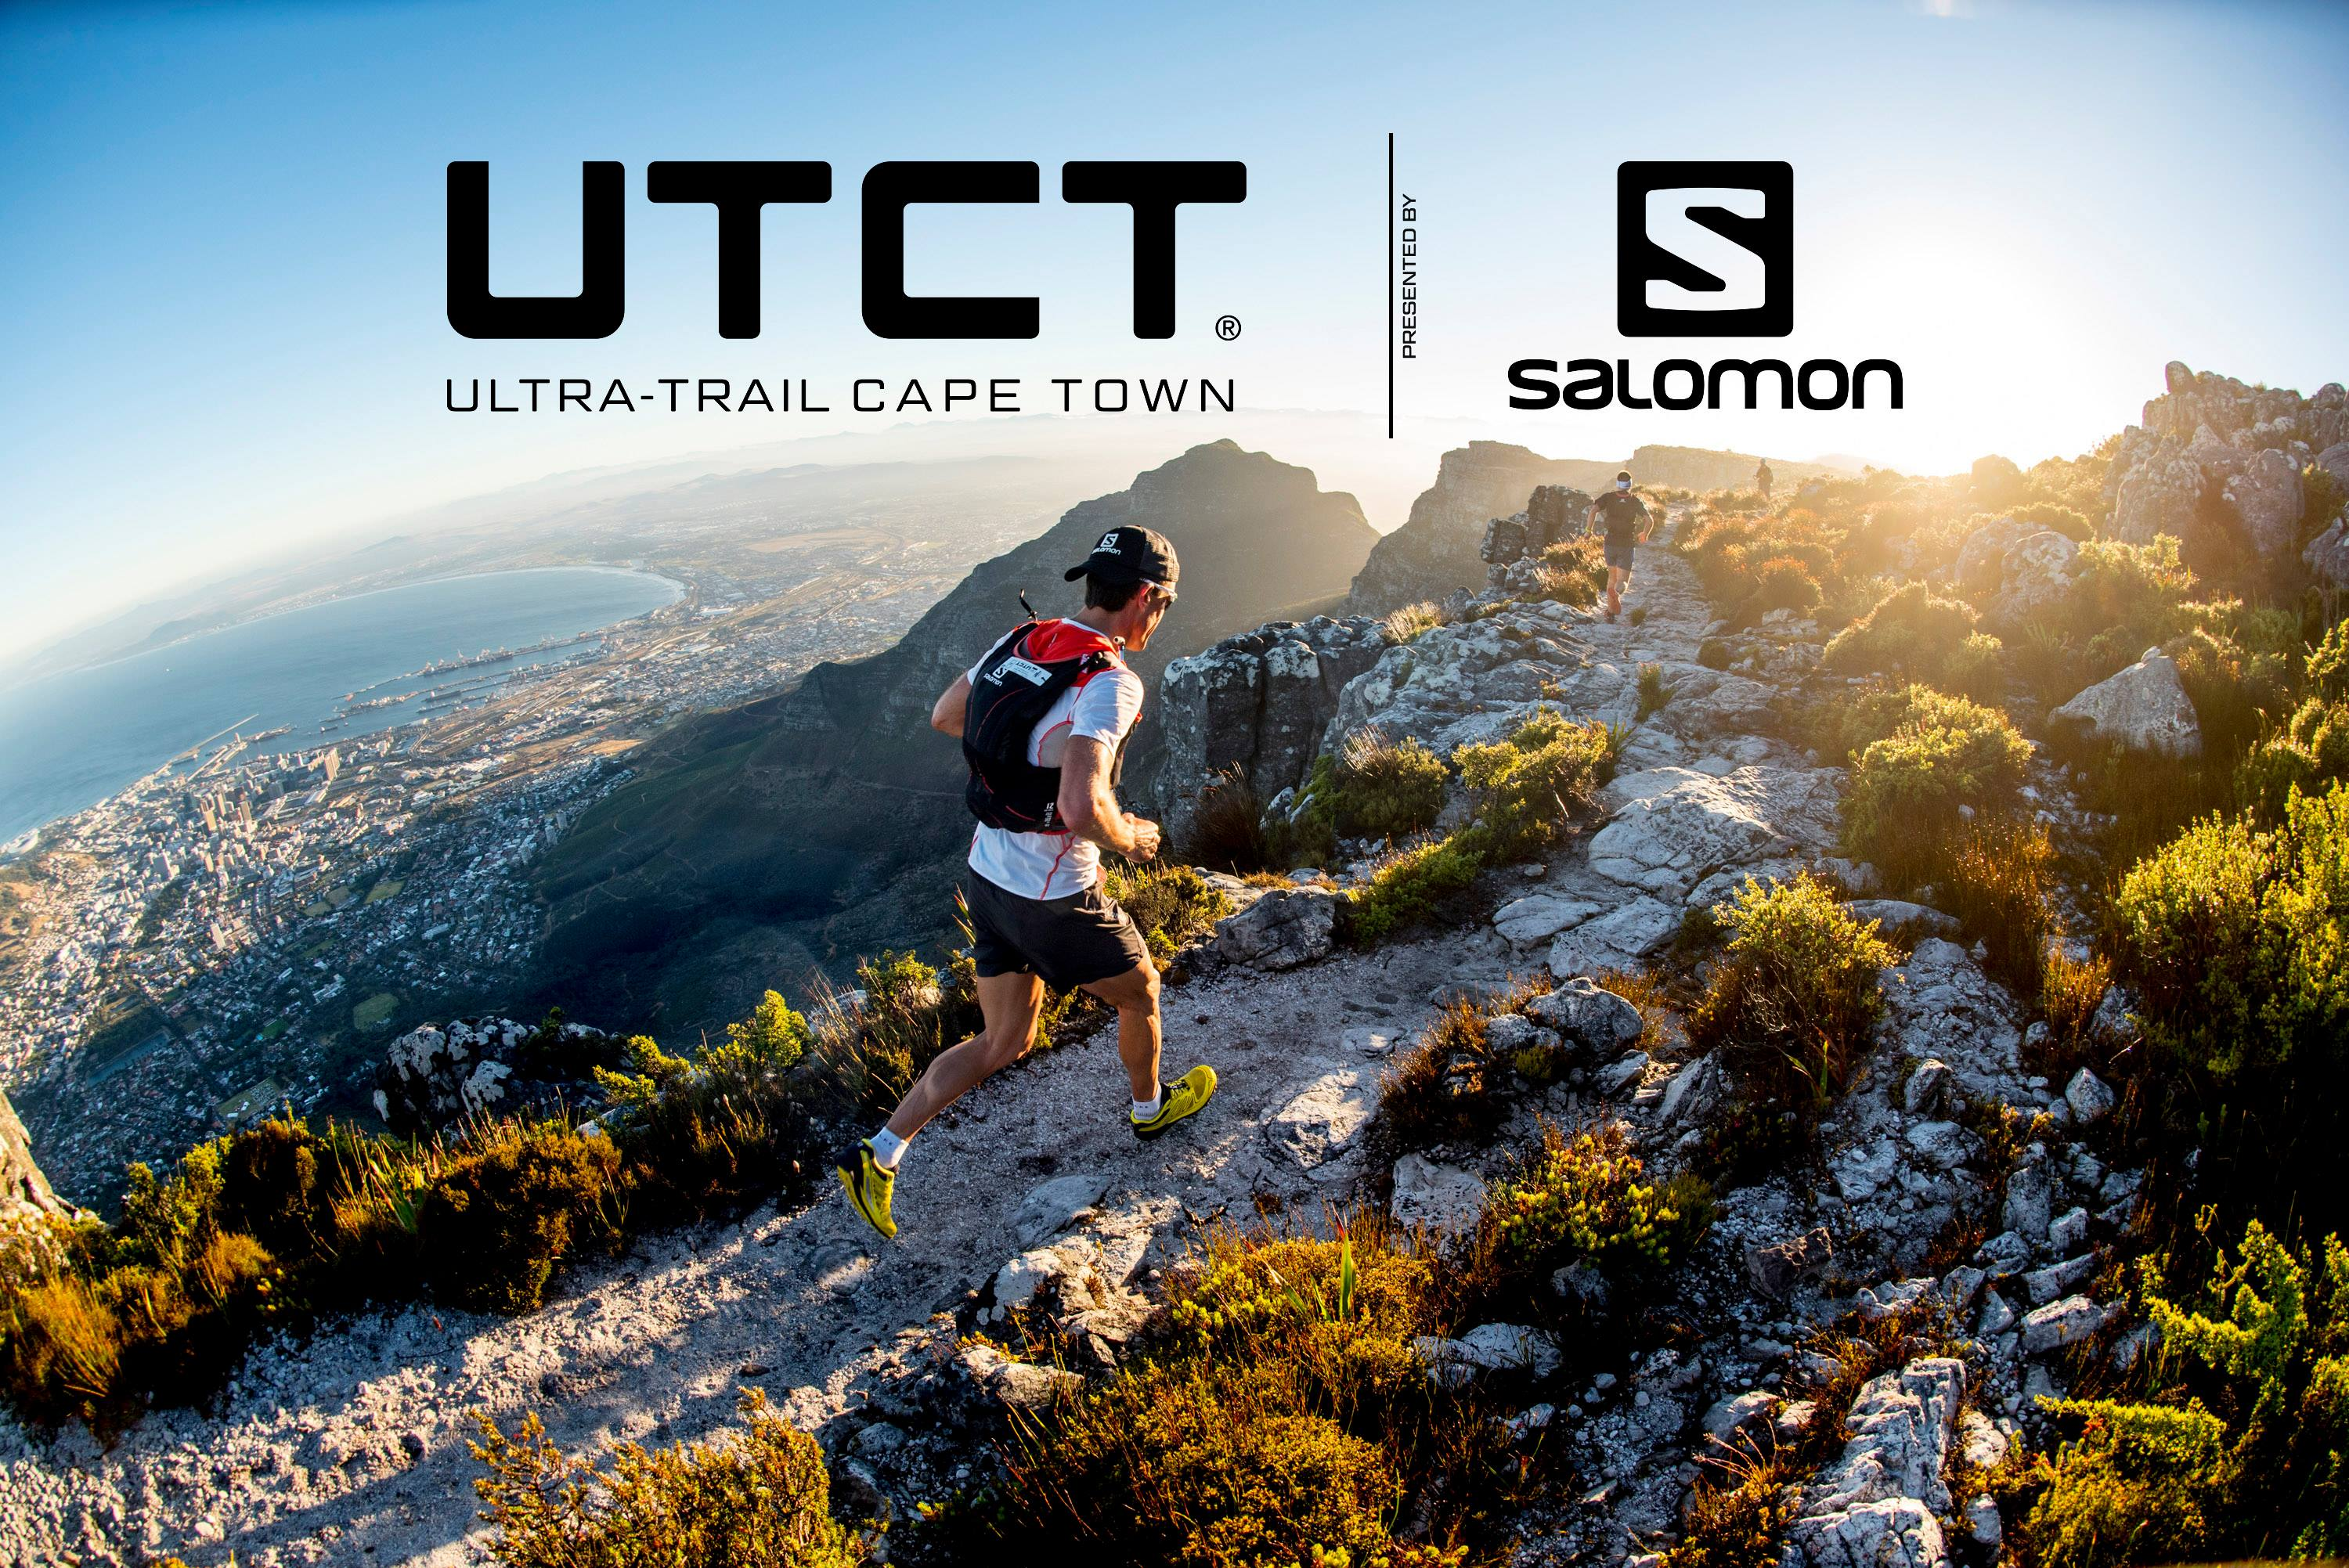 UTCT presented by Salomon